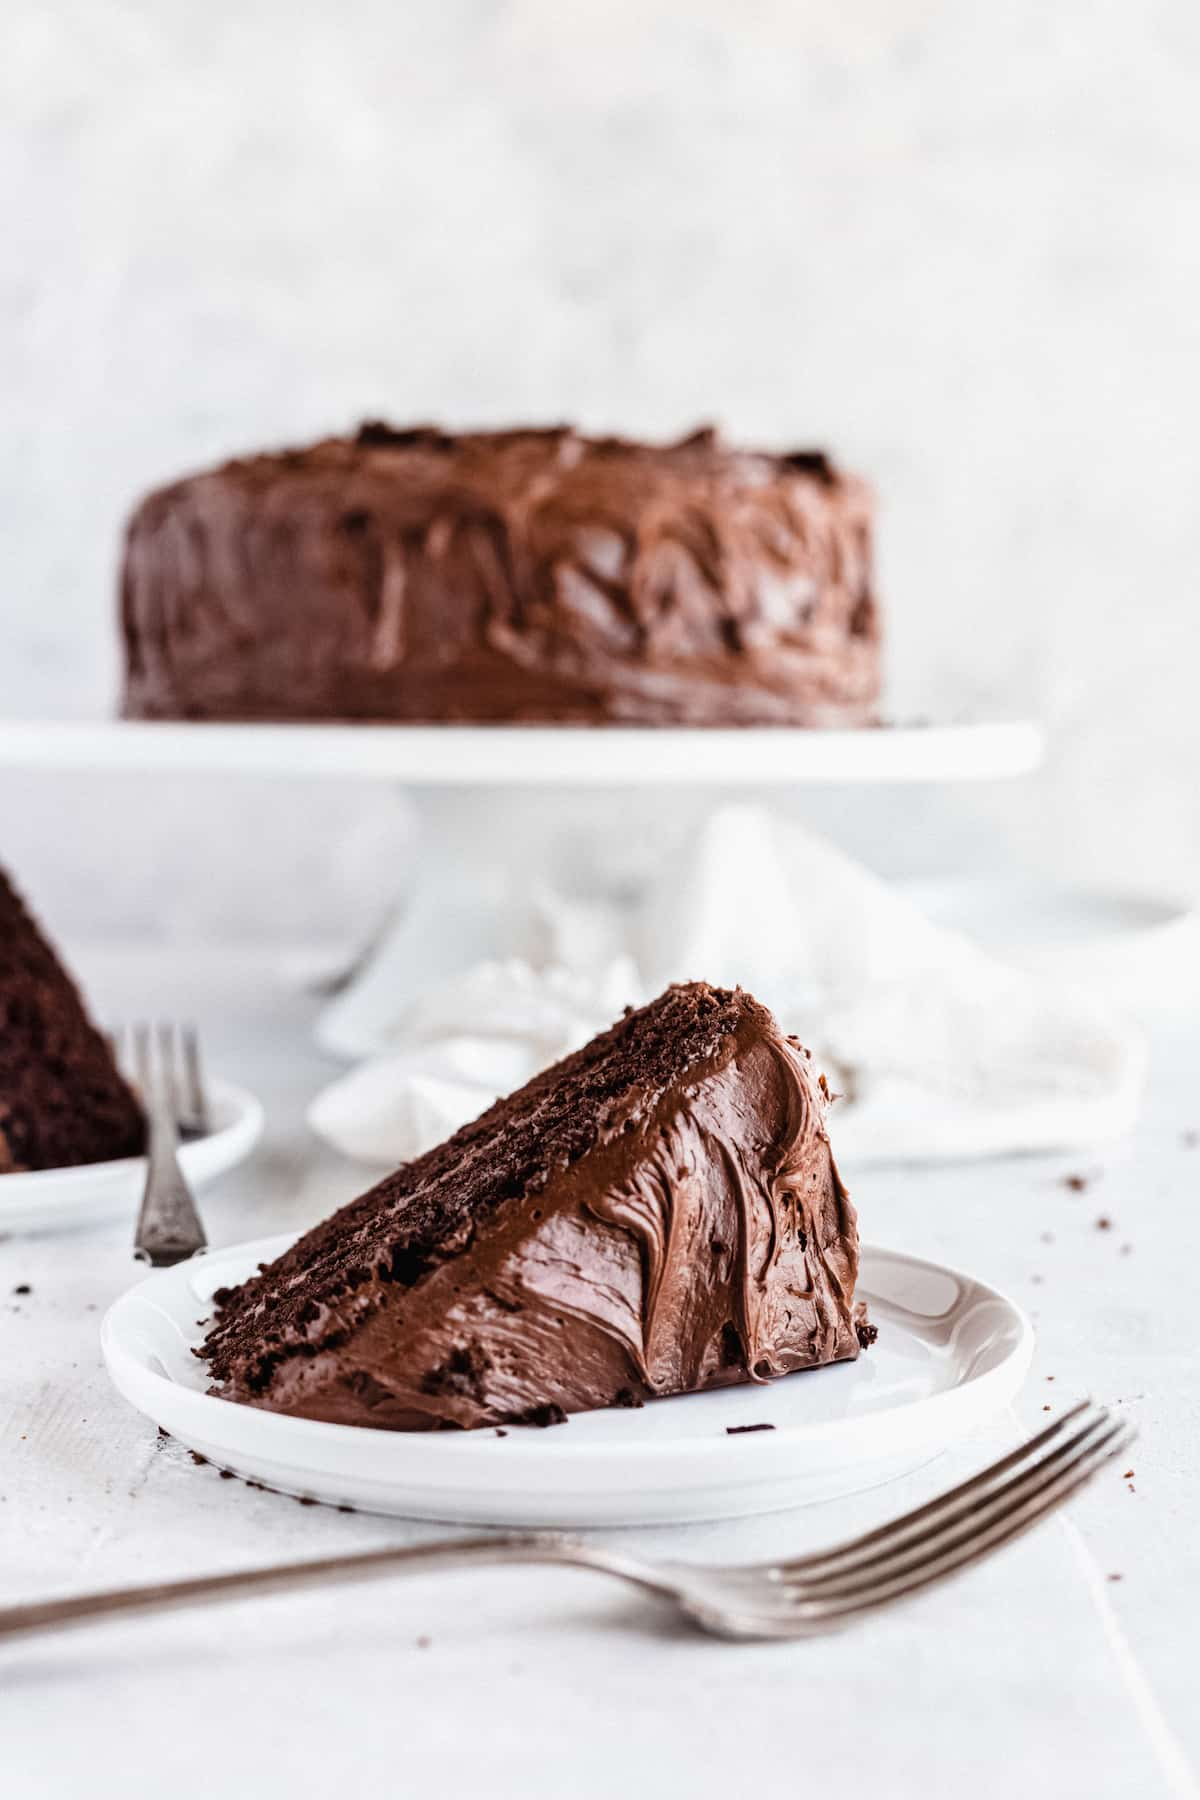 A Sideways-Lying Slice of Chocolate Cake on a Countertop with a Fork